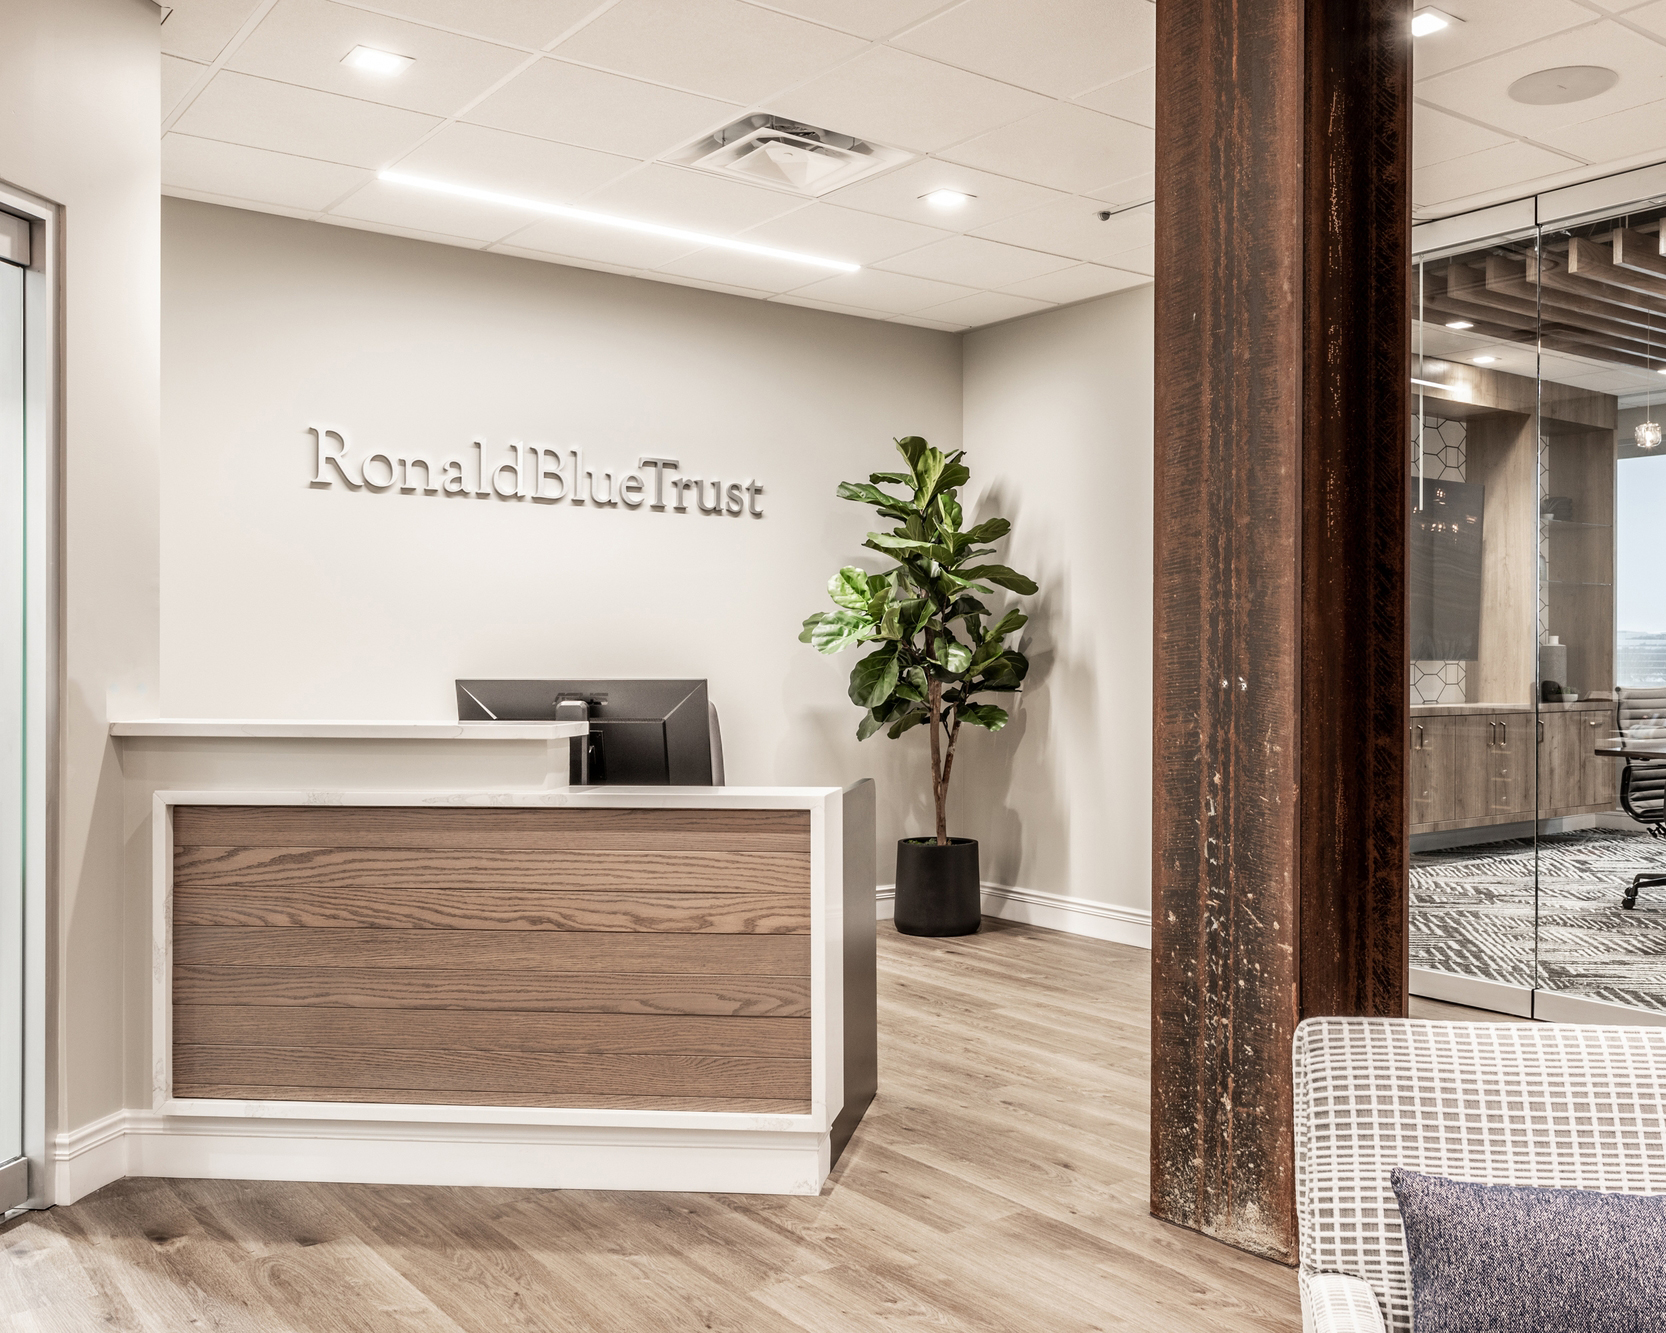 Ronald Blue Trust Offices - United State